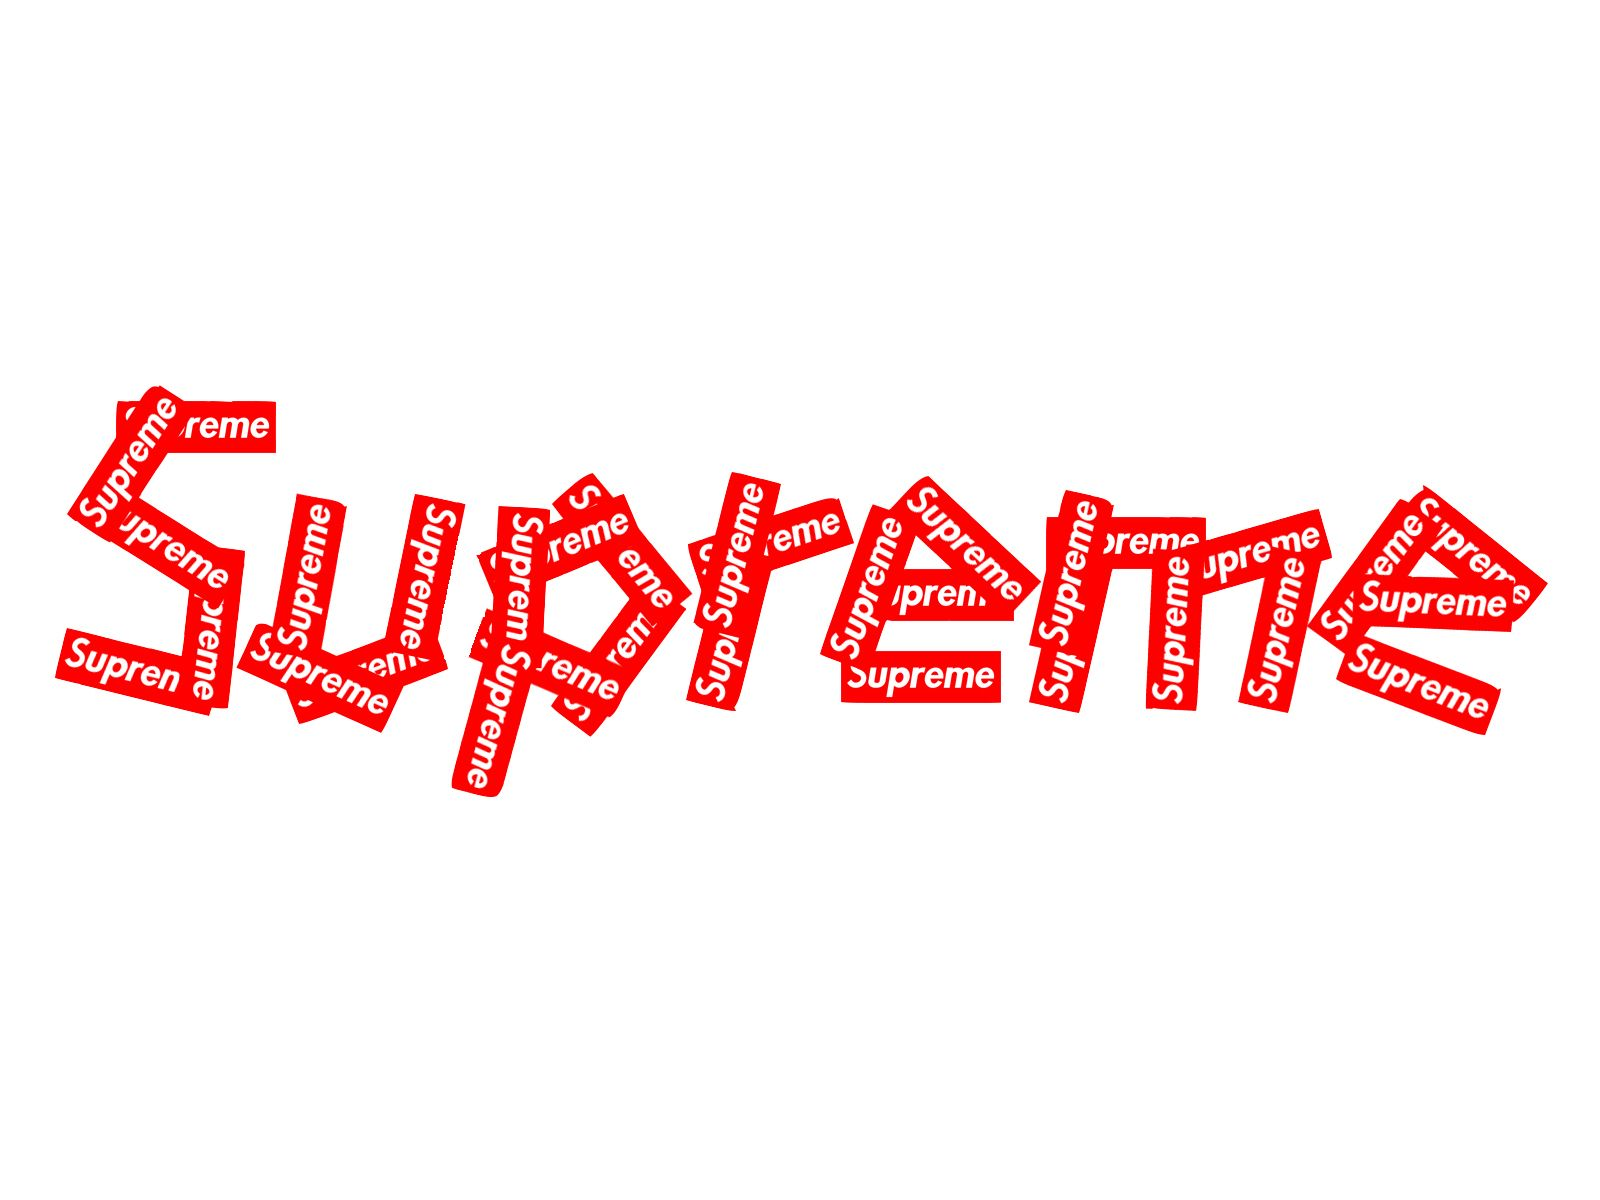 HD Supreme Wallpapers Live Supreme Wallpapers HY WP HD 1600x1200